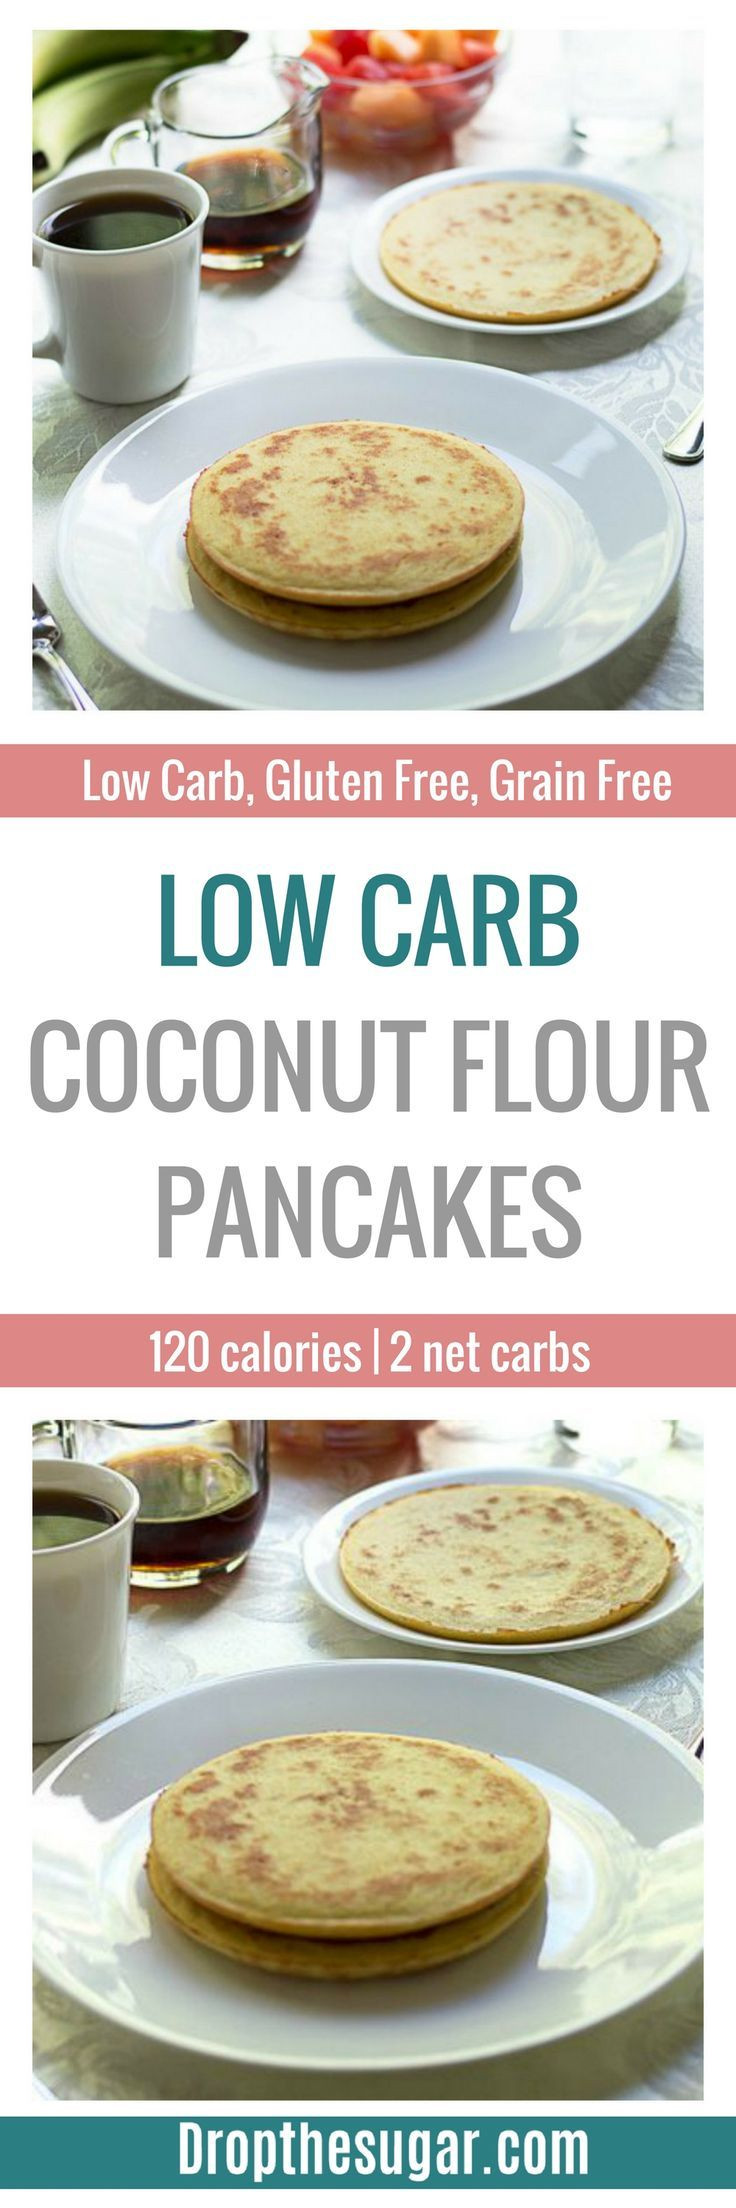 Low Carb Coconut Flour Pancakes  Low Carb Coconut Flour Pancakes